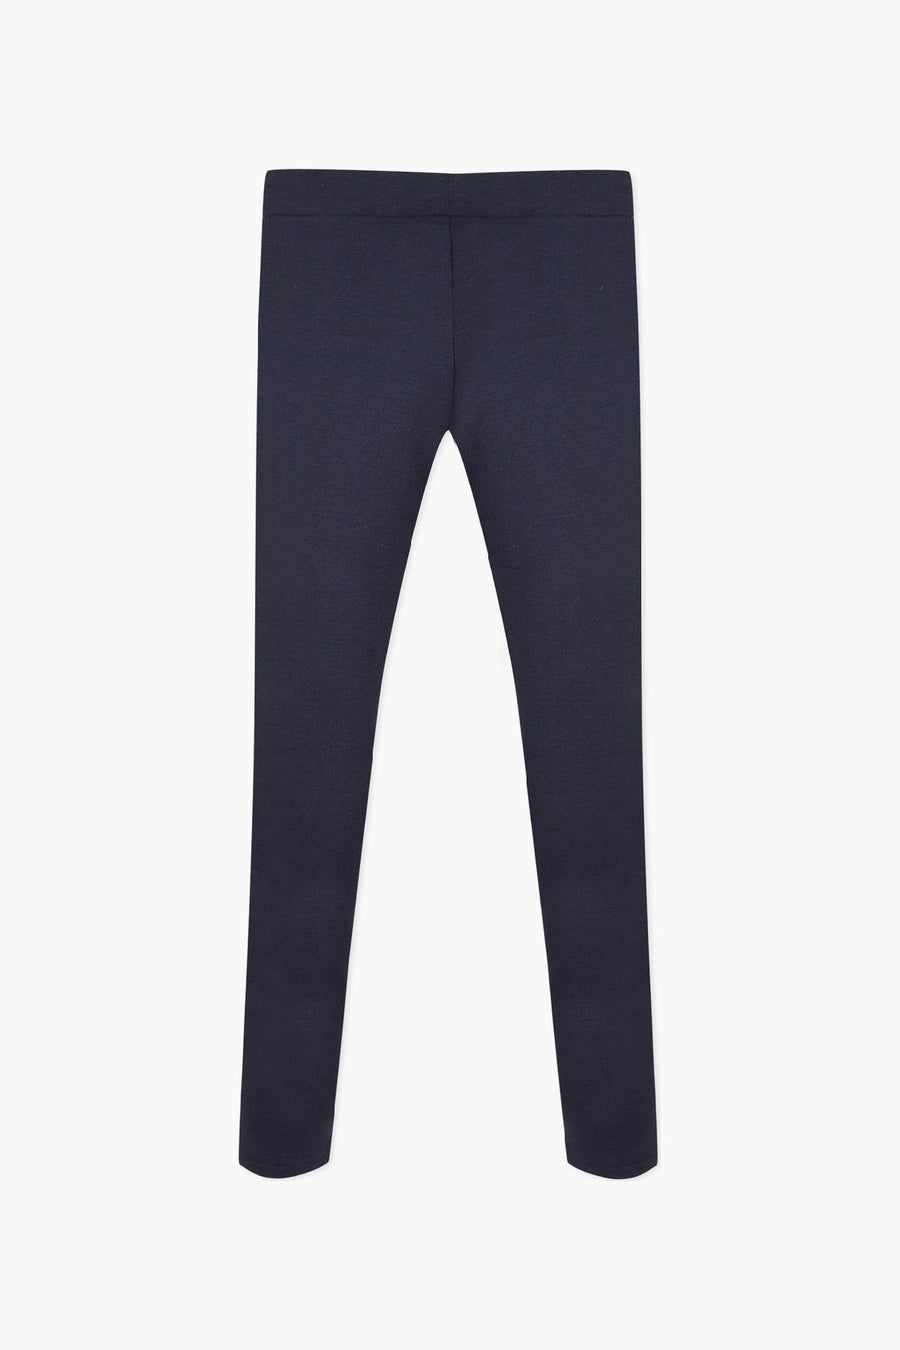 3pommes Navy Girls Pants